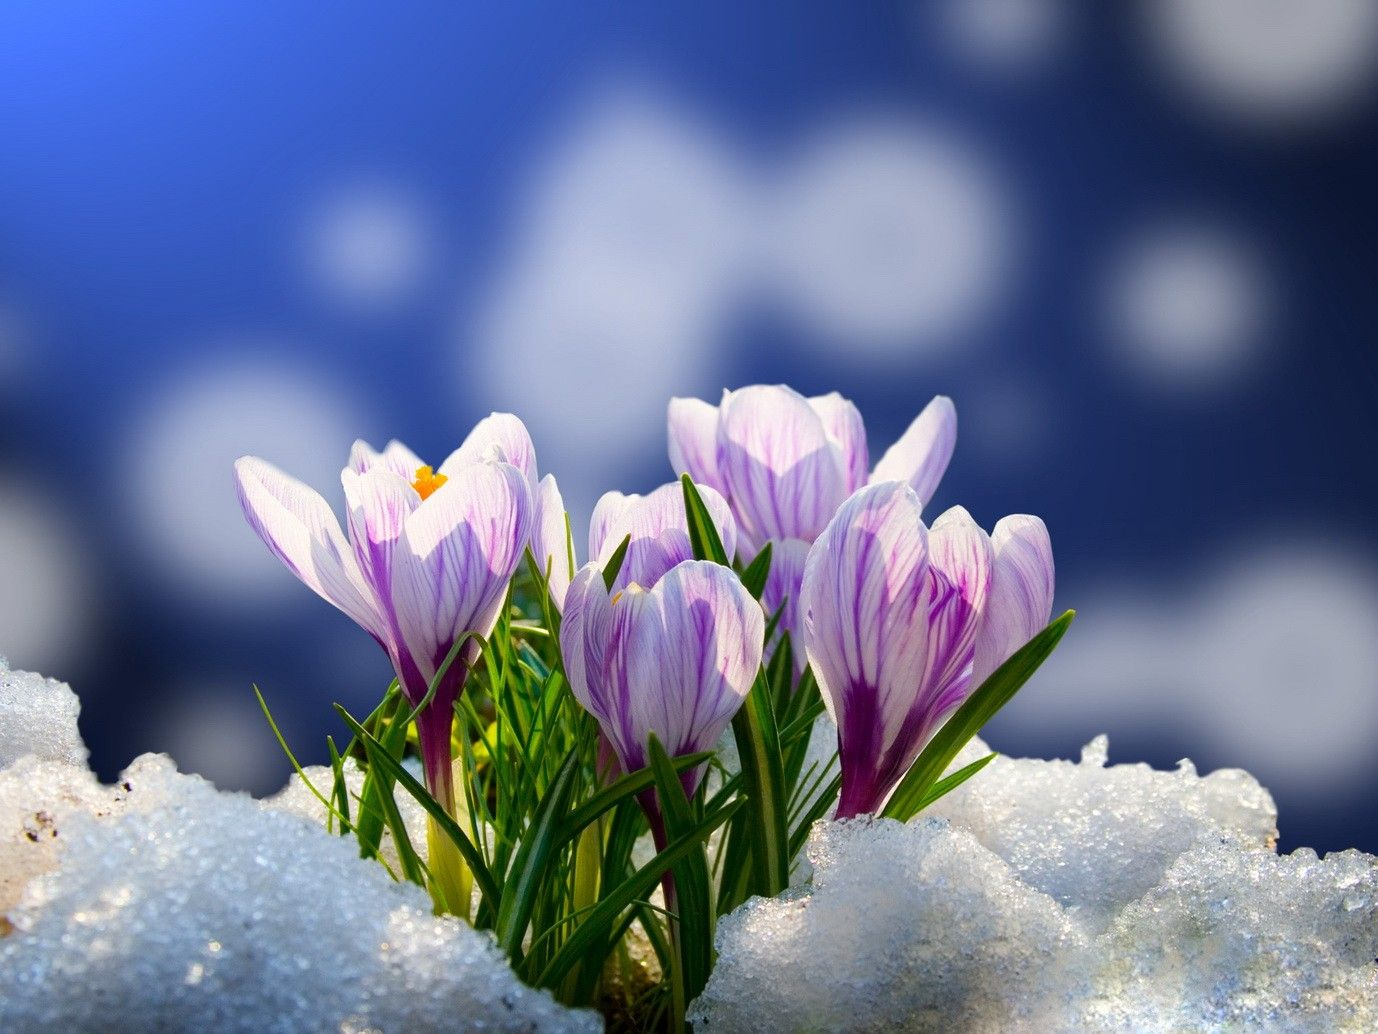 Flowers In Snow Wallpapers Top Free Flowers In Snow Backgrounds